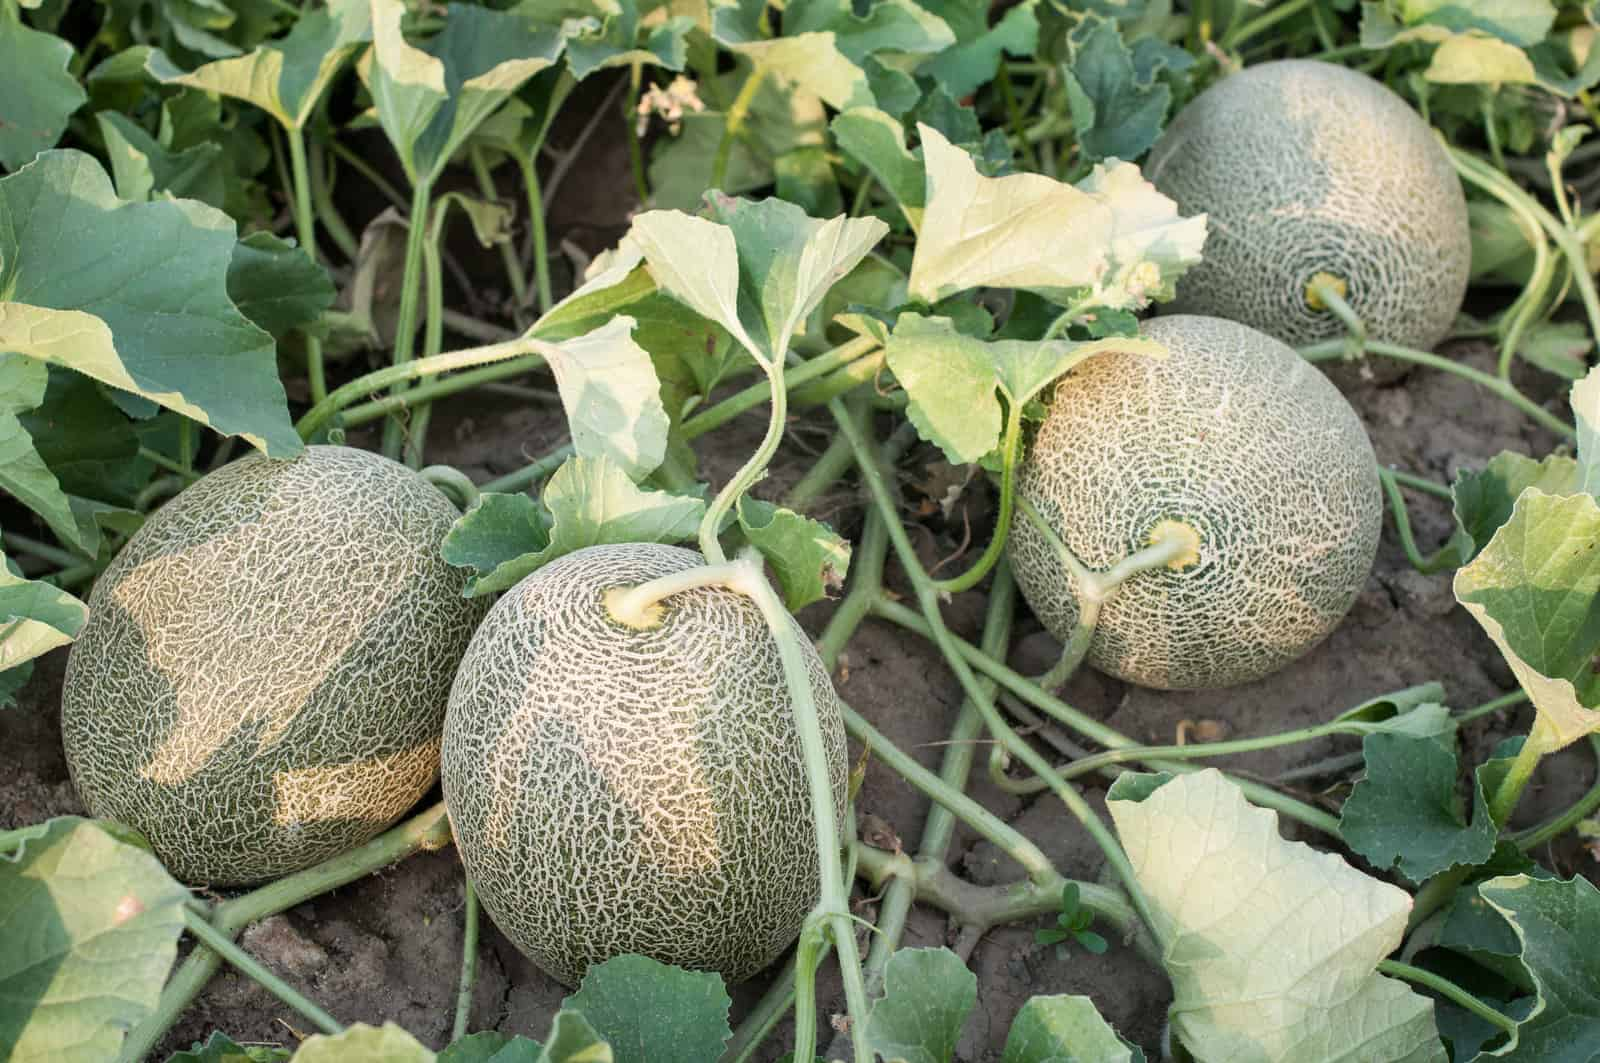 Four melons on one vine